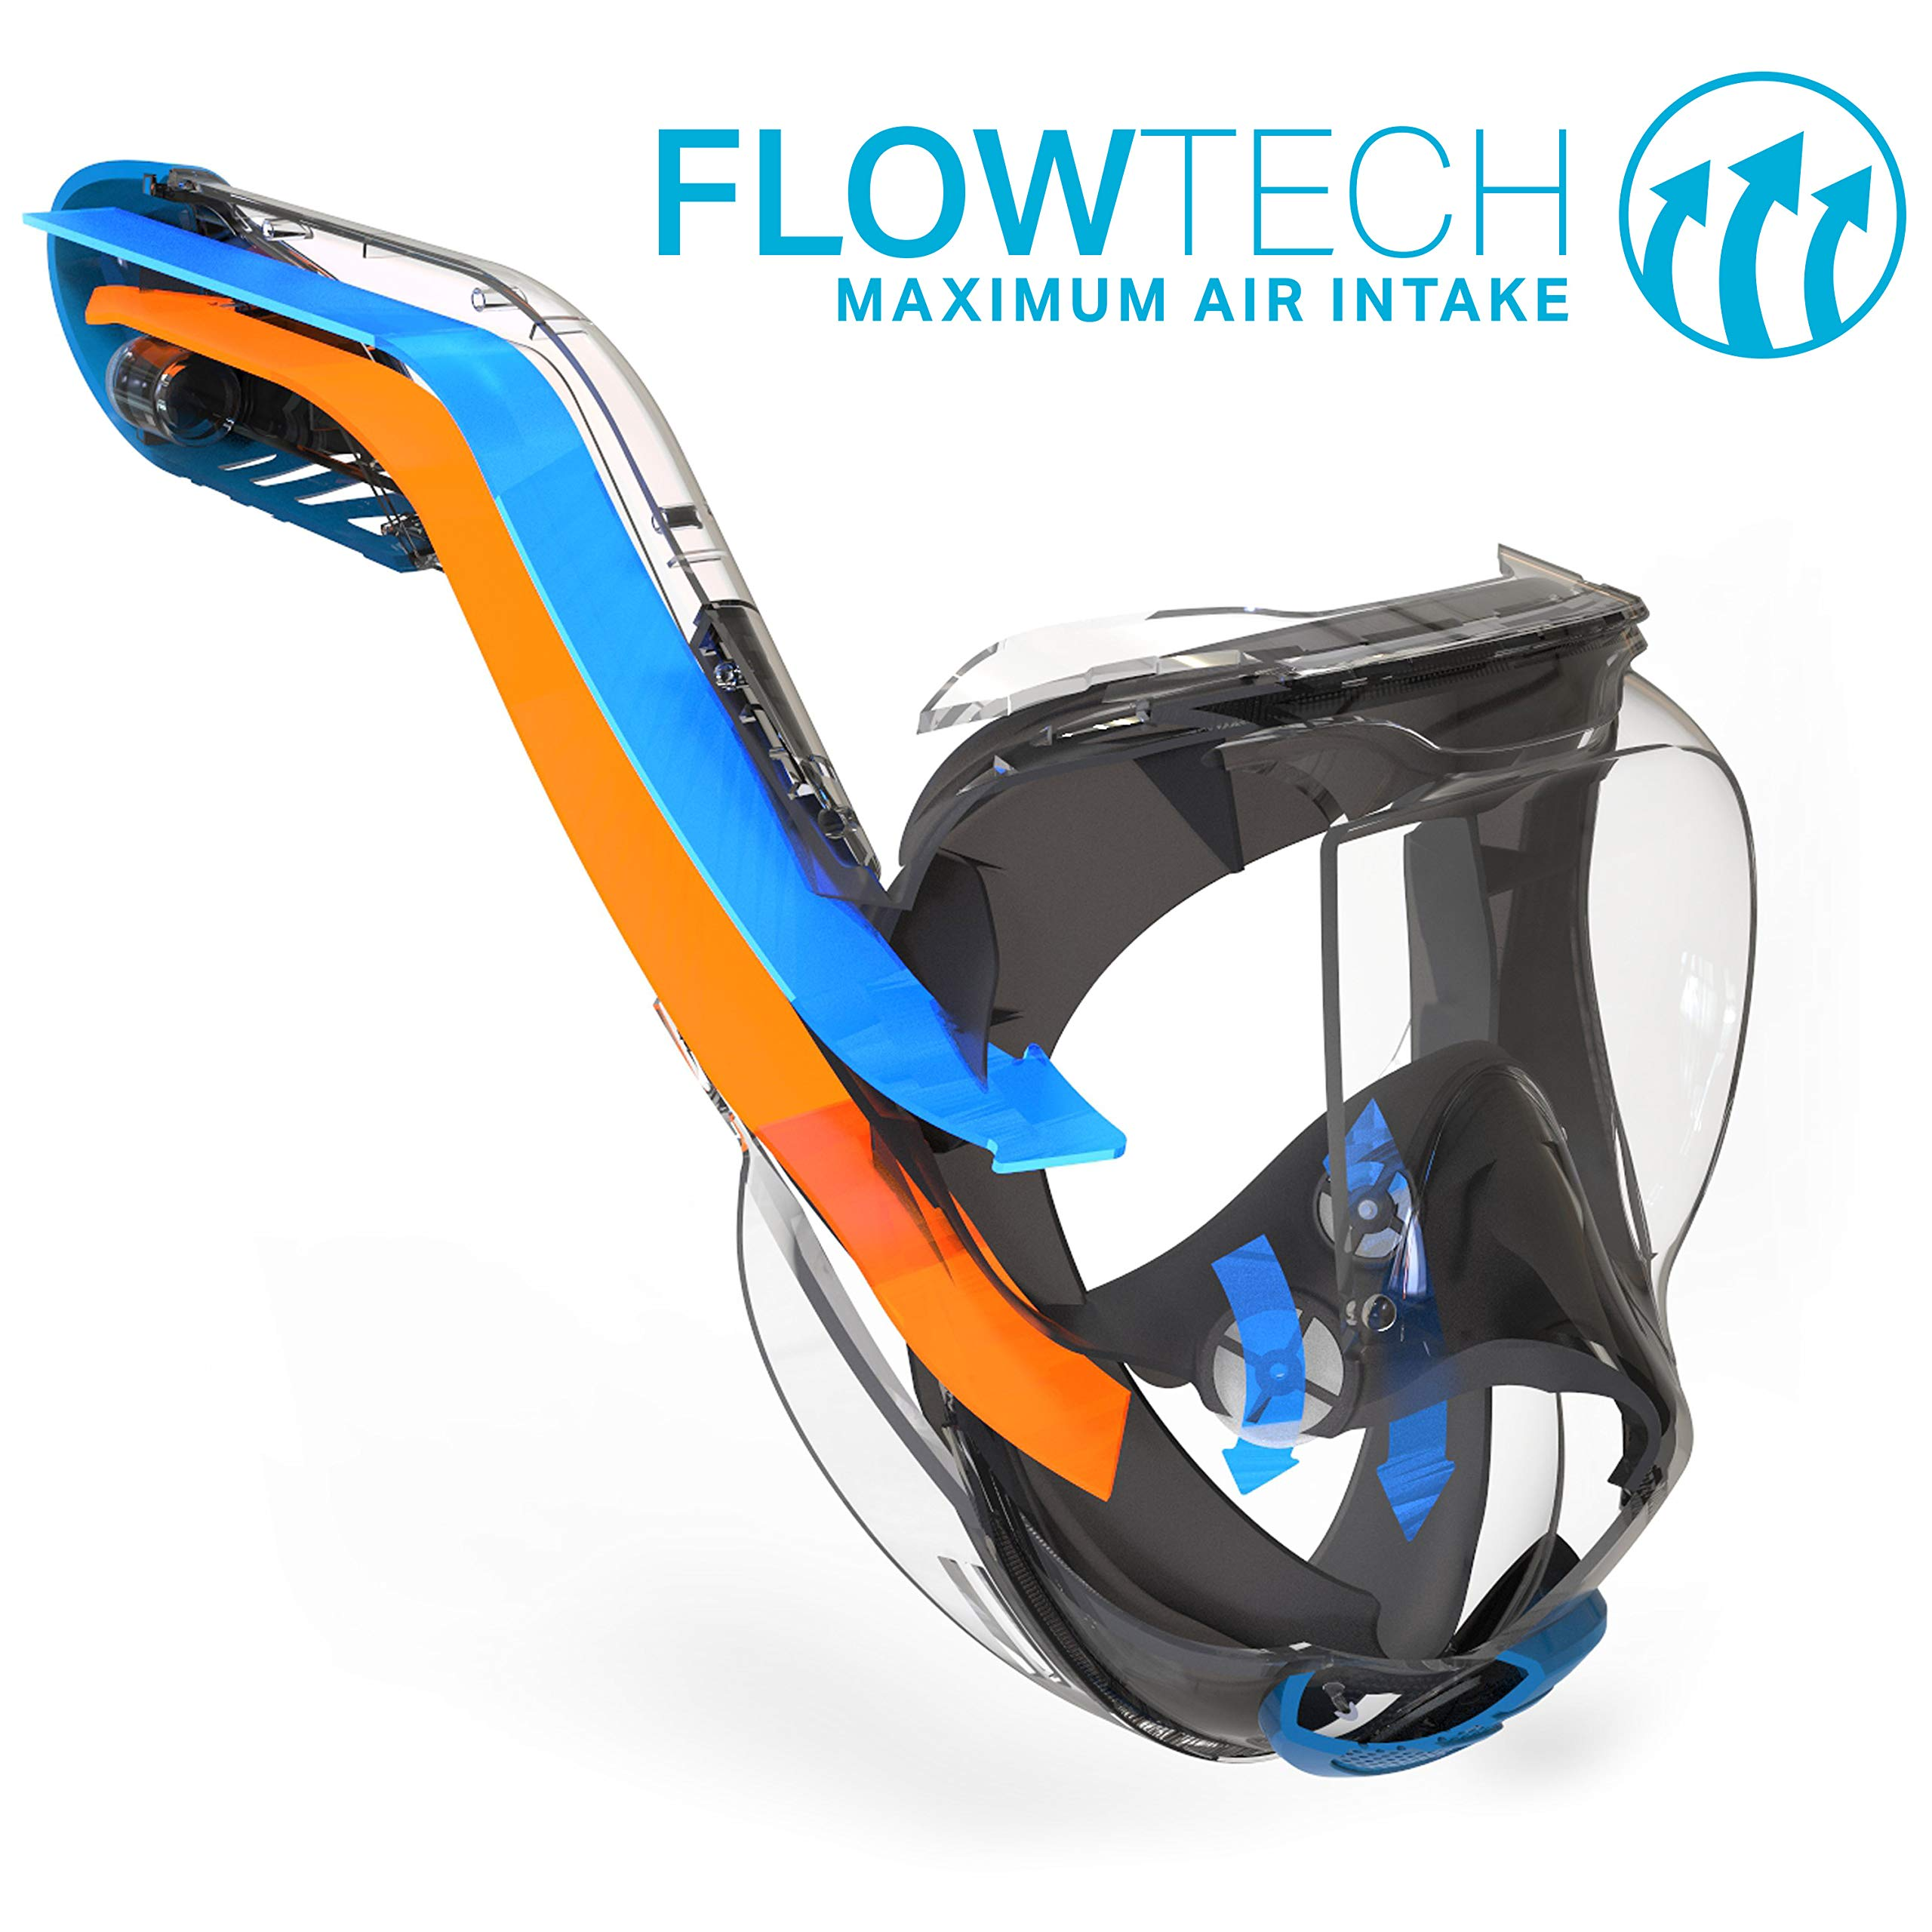 WildHorn Outfitters Seaview 180° V2 Full Face Snorkel Mask with FLOWTECH Advanced Breathing System - Allows for A Natural & Safe Snorkeling Experience- Panoramic Side Snorkel Set Design by WildHorn Outfitters (Image #3)